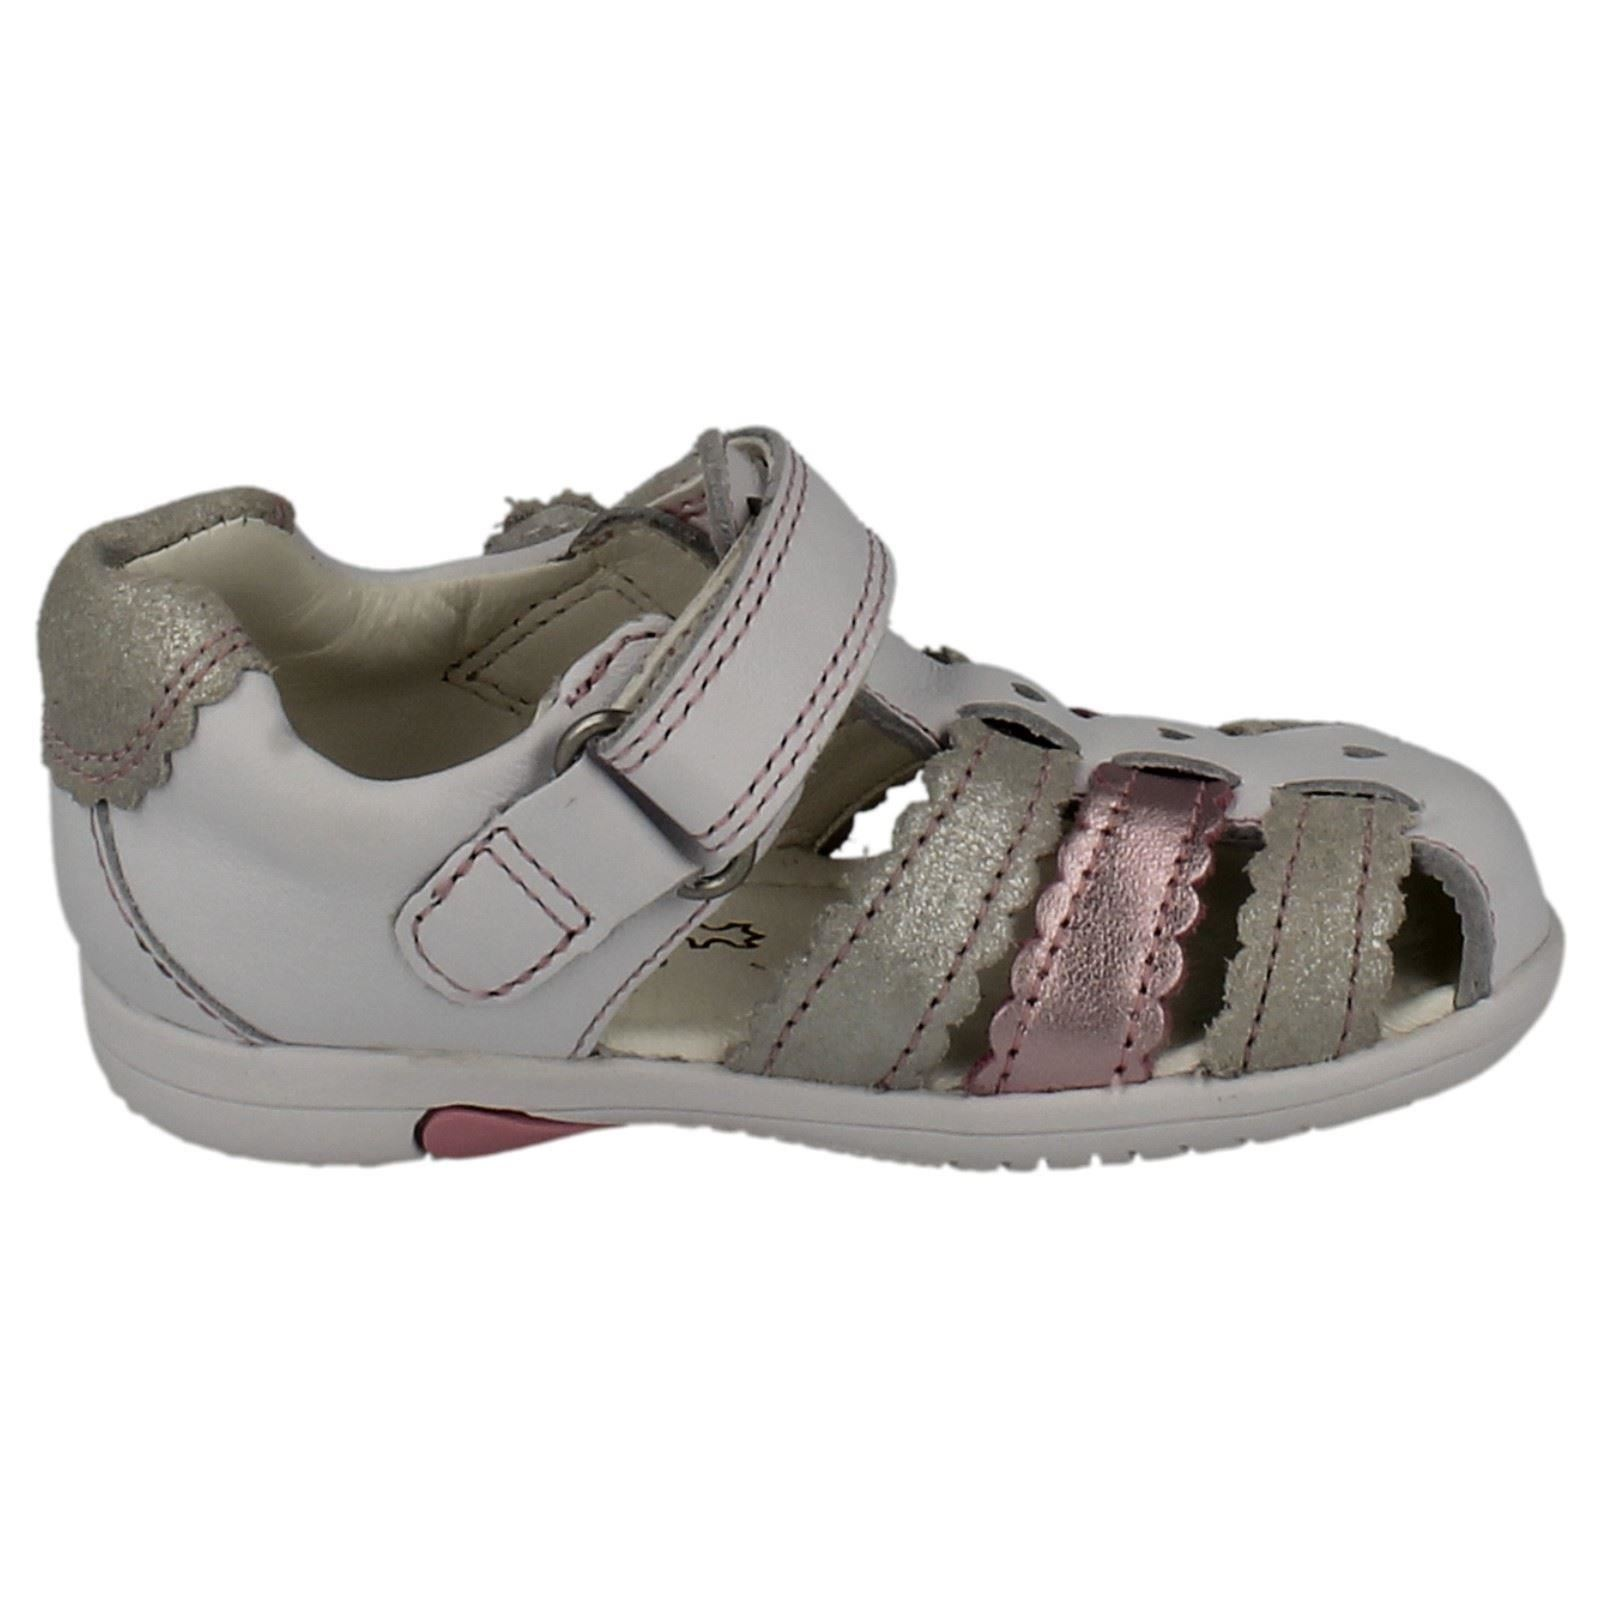 f02714e5c74 Girls Clarks First Sandals Closed Toe Softly Palm FST